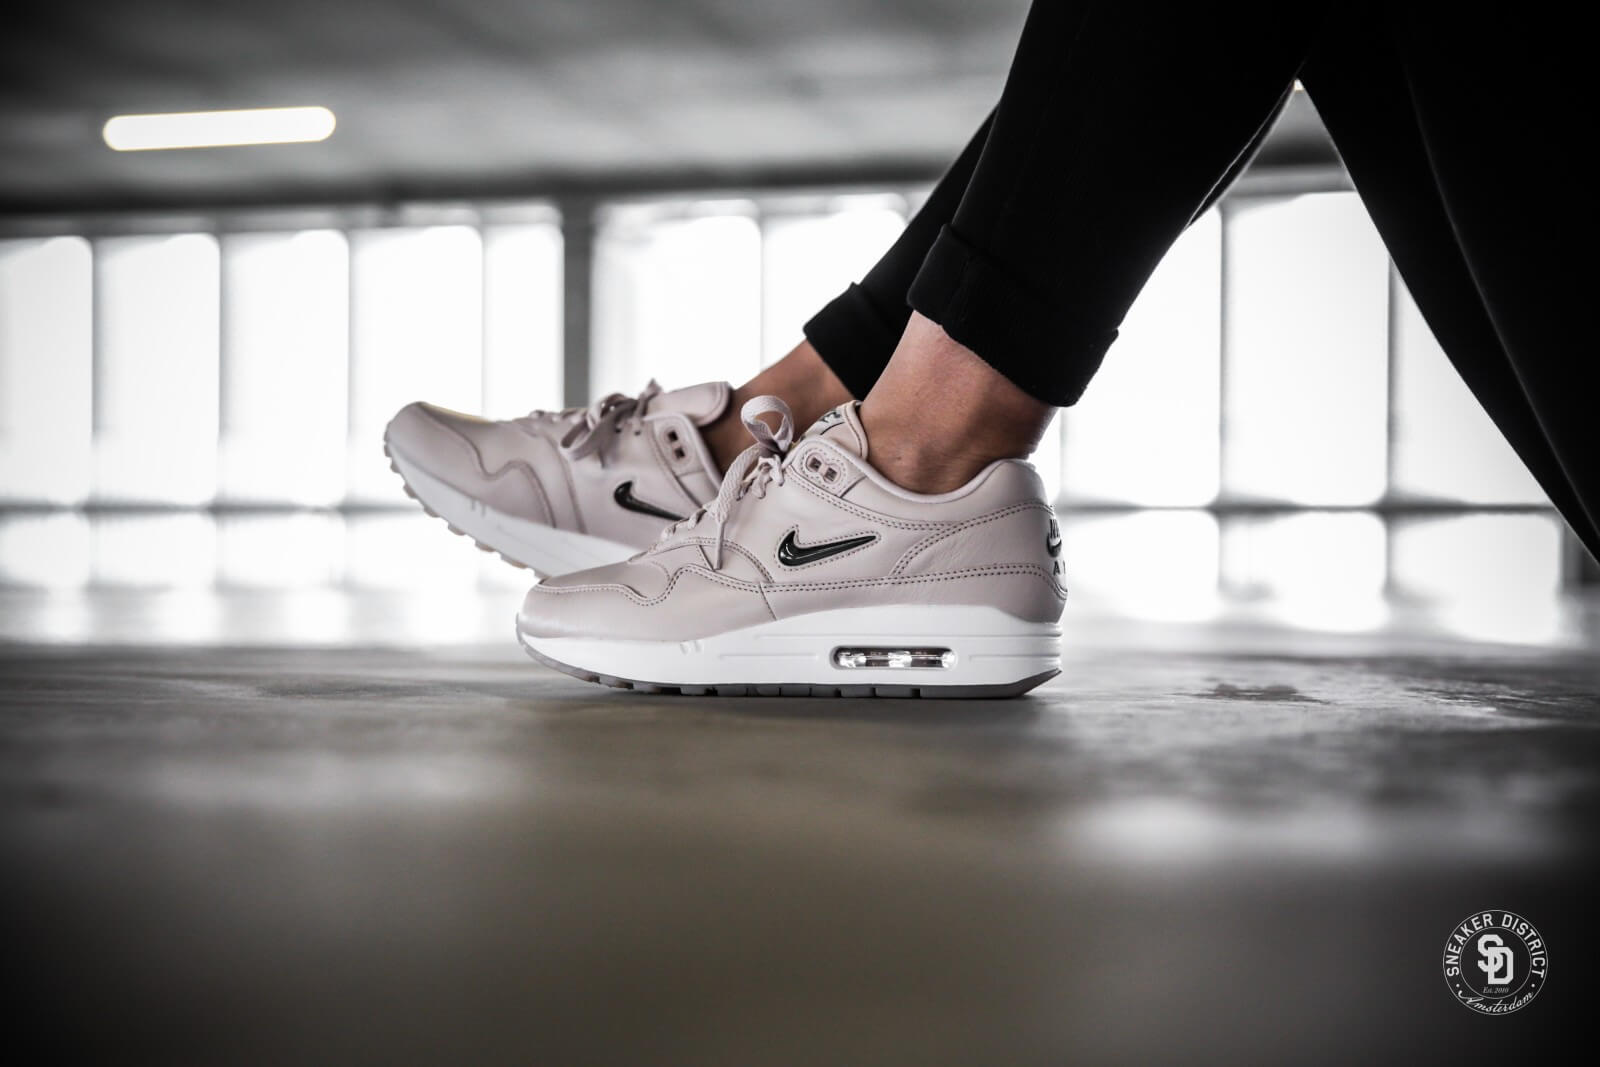 newest 3352b 8517f promo code for nike womens air max 1 premium sc jewel silt red cool grey  white